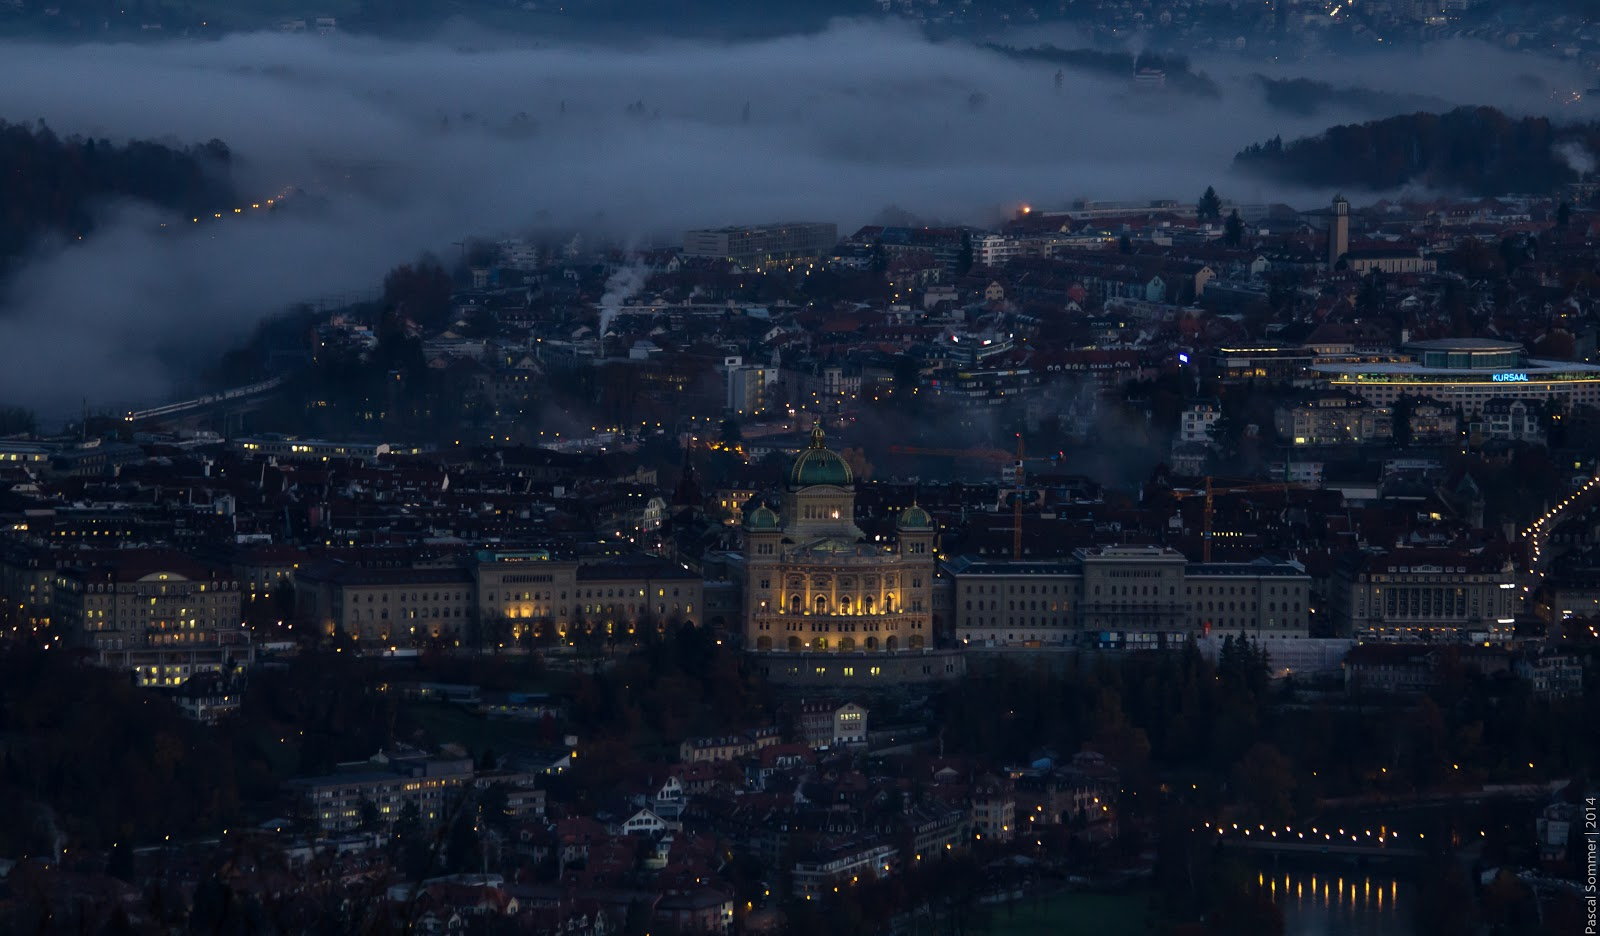 The Federal Palace of Switzerland